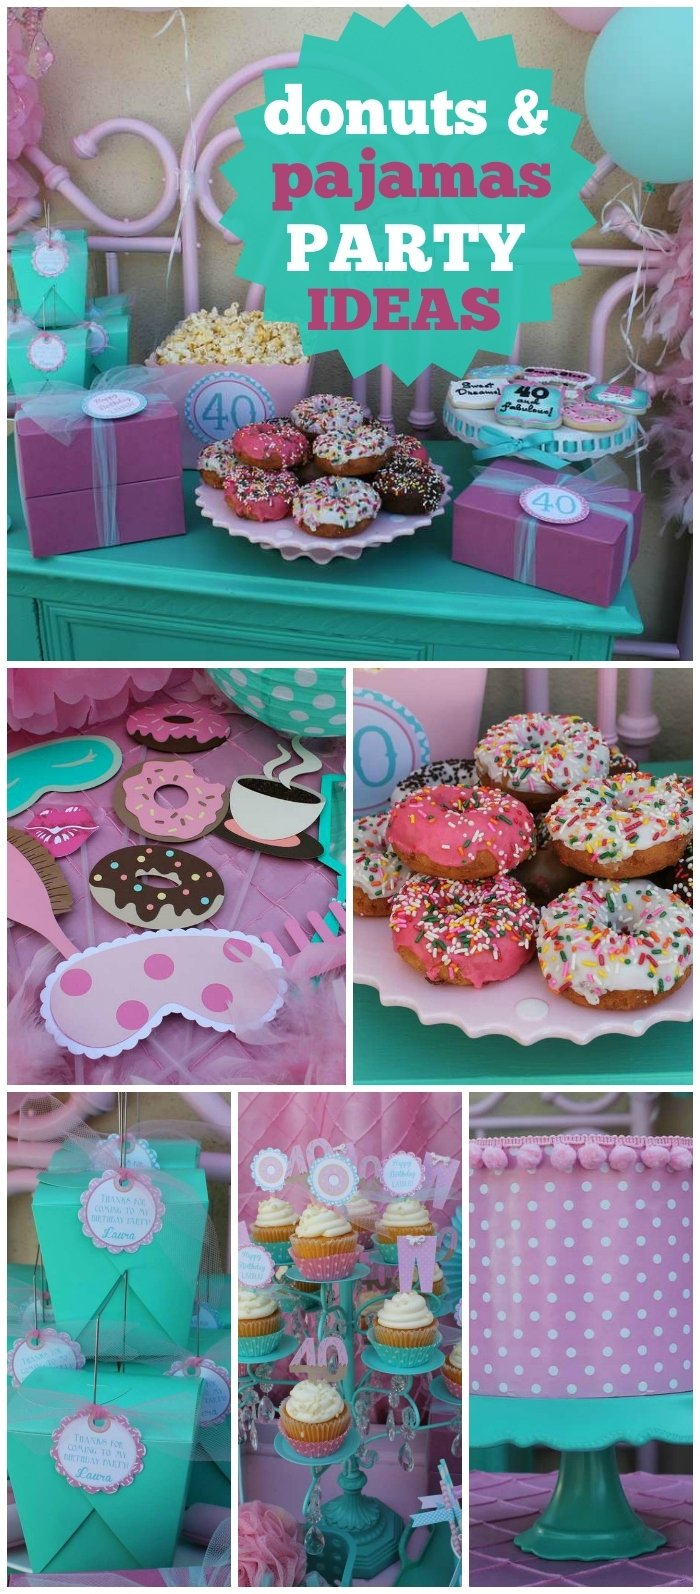 10 Most Recommended Slumber Party Ideas For 10 Year Olds donuts pajamas birthday lauras 40th donuts pjs bash 1 2020